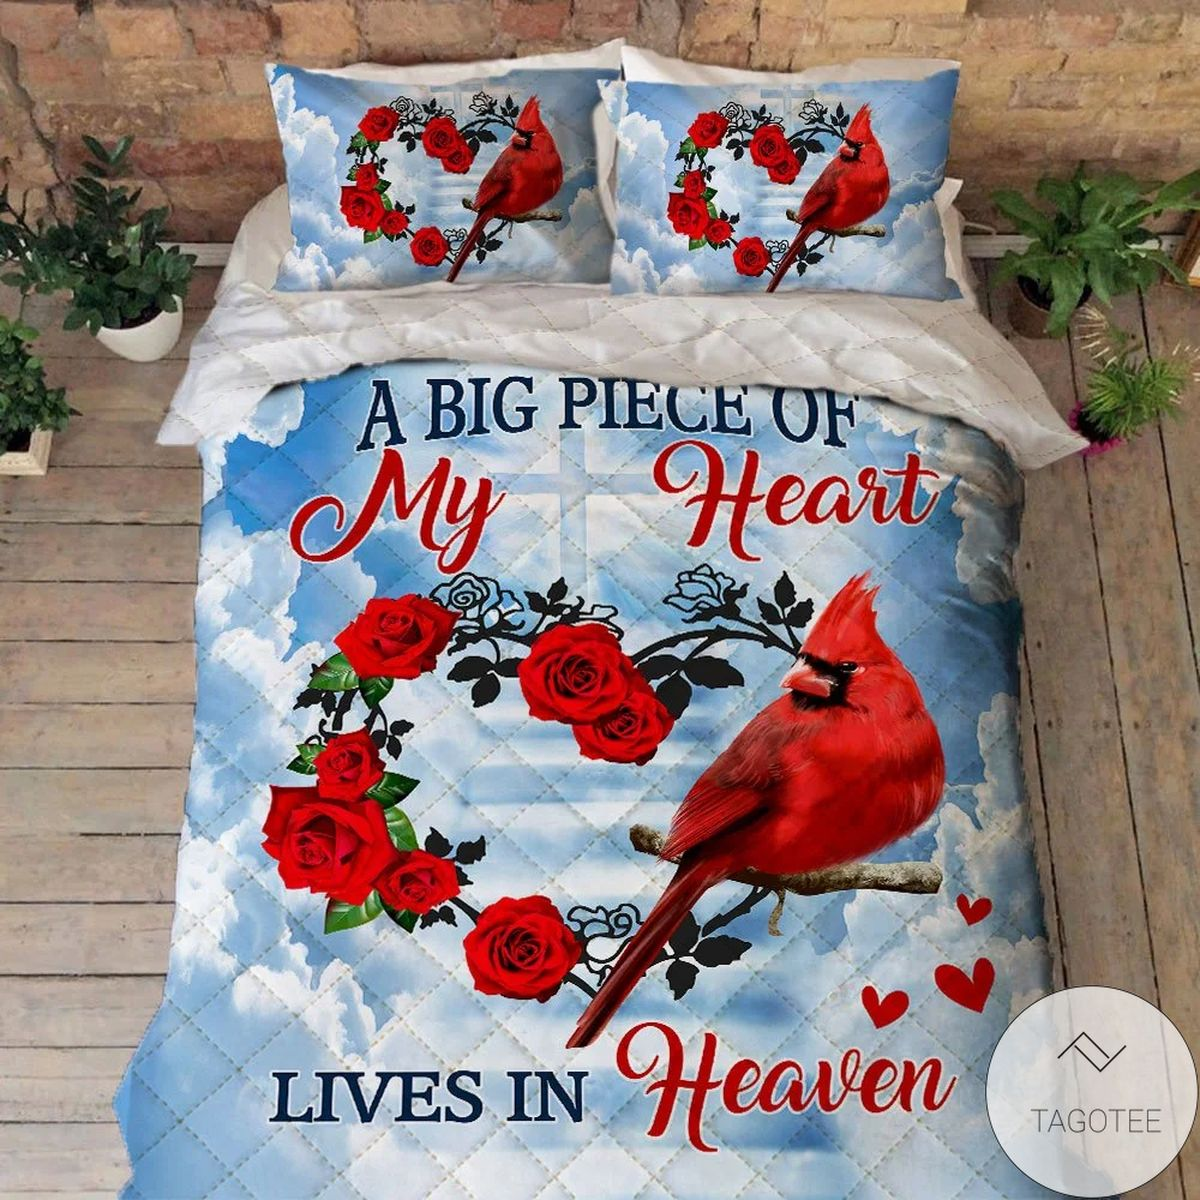 Sale Off A Big Piece Of My Heart Lives In Heaven Cardinal Quilt Bedding Set